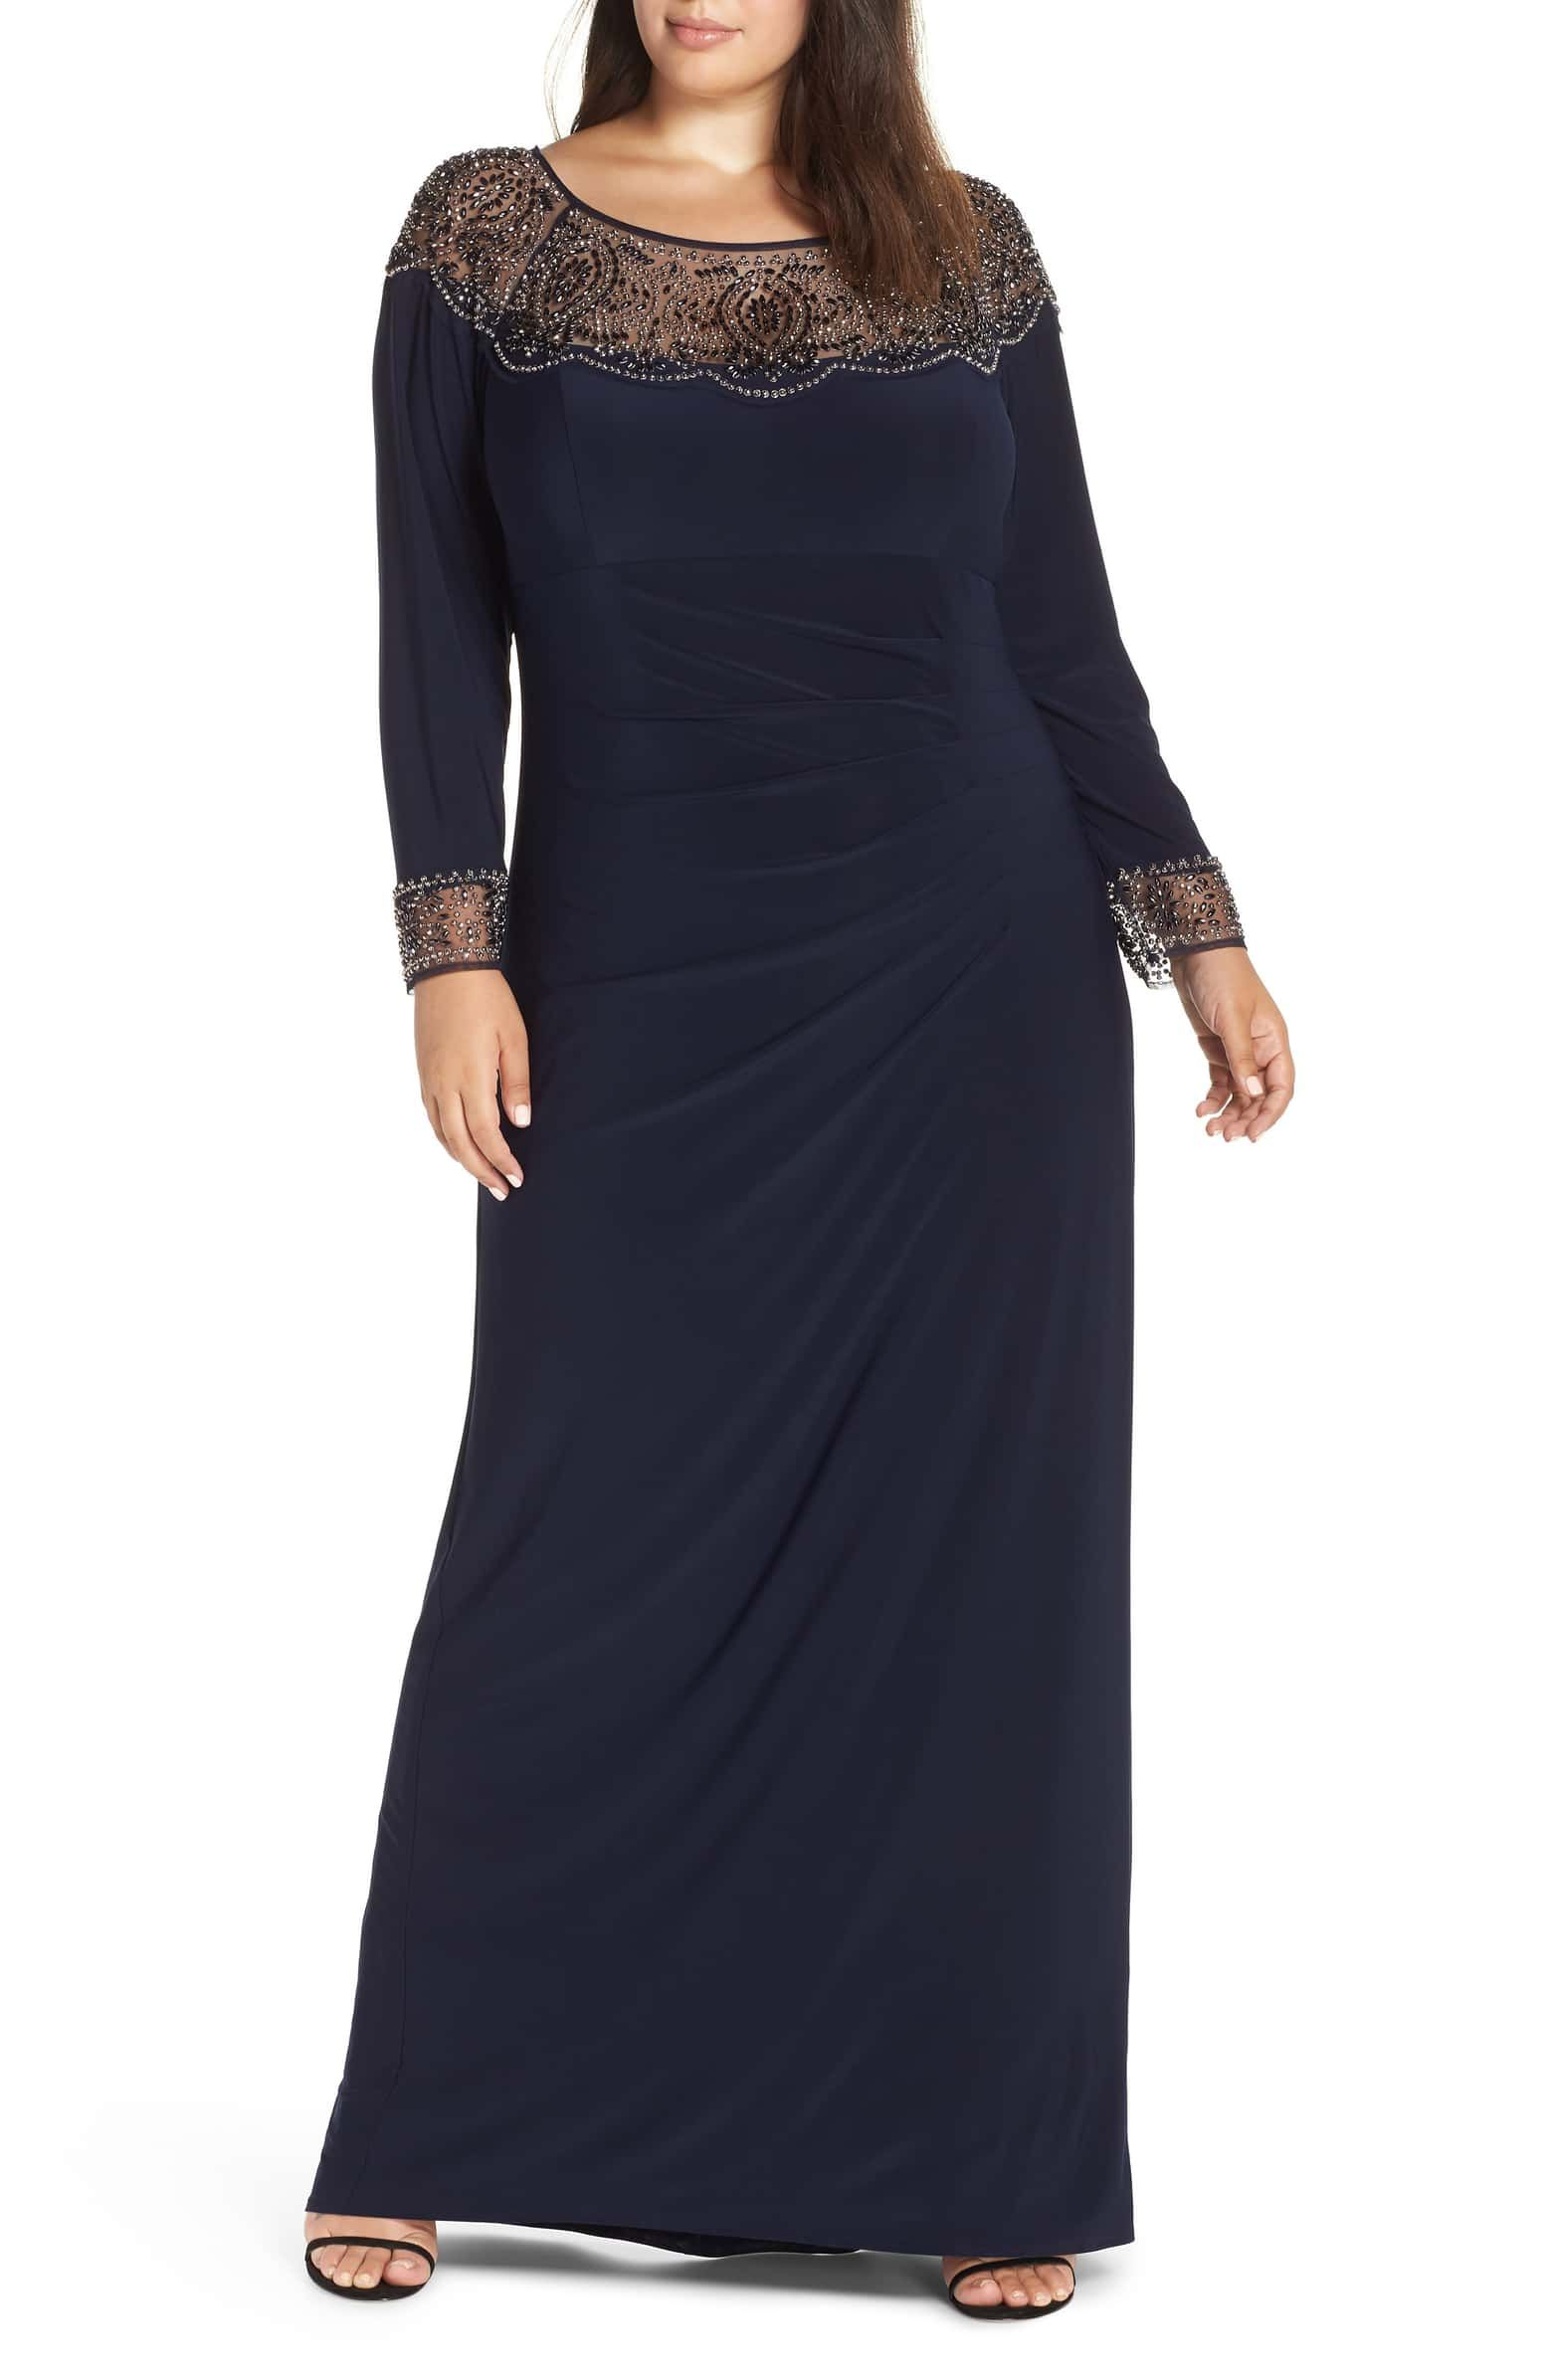 Xscape Side Ruched Beaded Gown Plus Size Nordstrom Stylish Formal Dresses Beaded Gown Gowns [ 2392 x 1560 Pixel ]